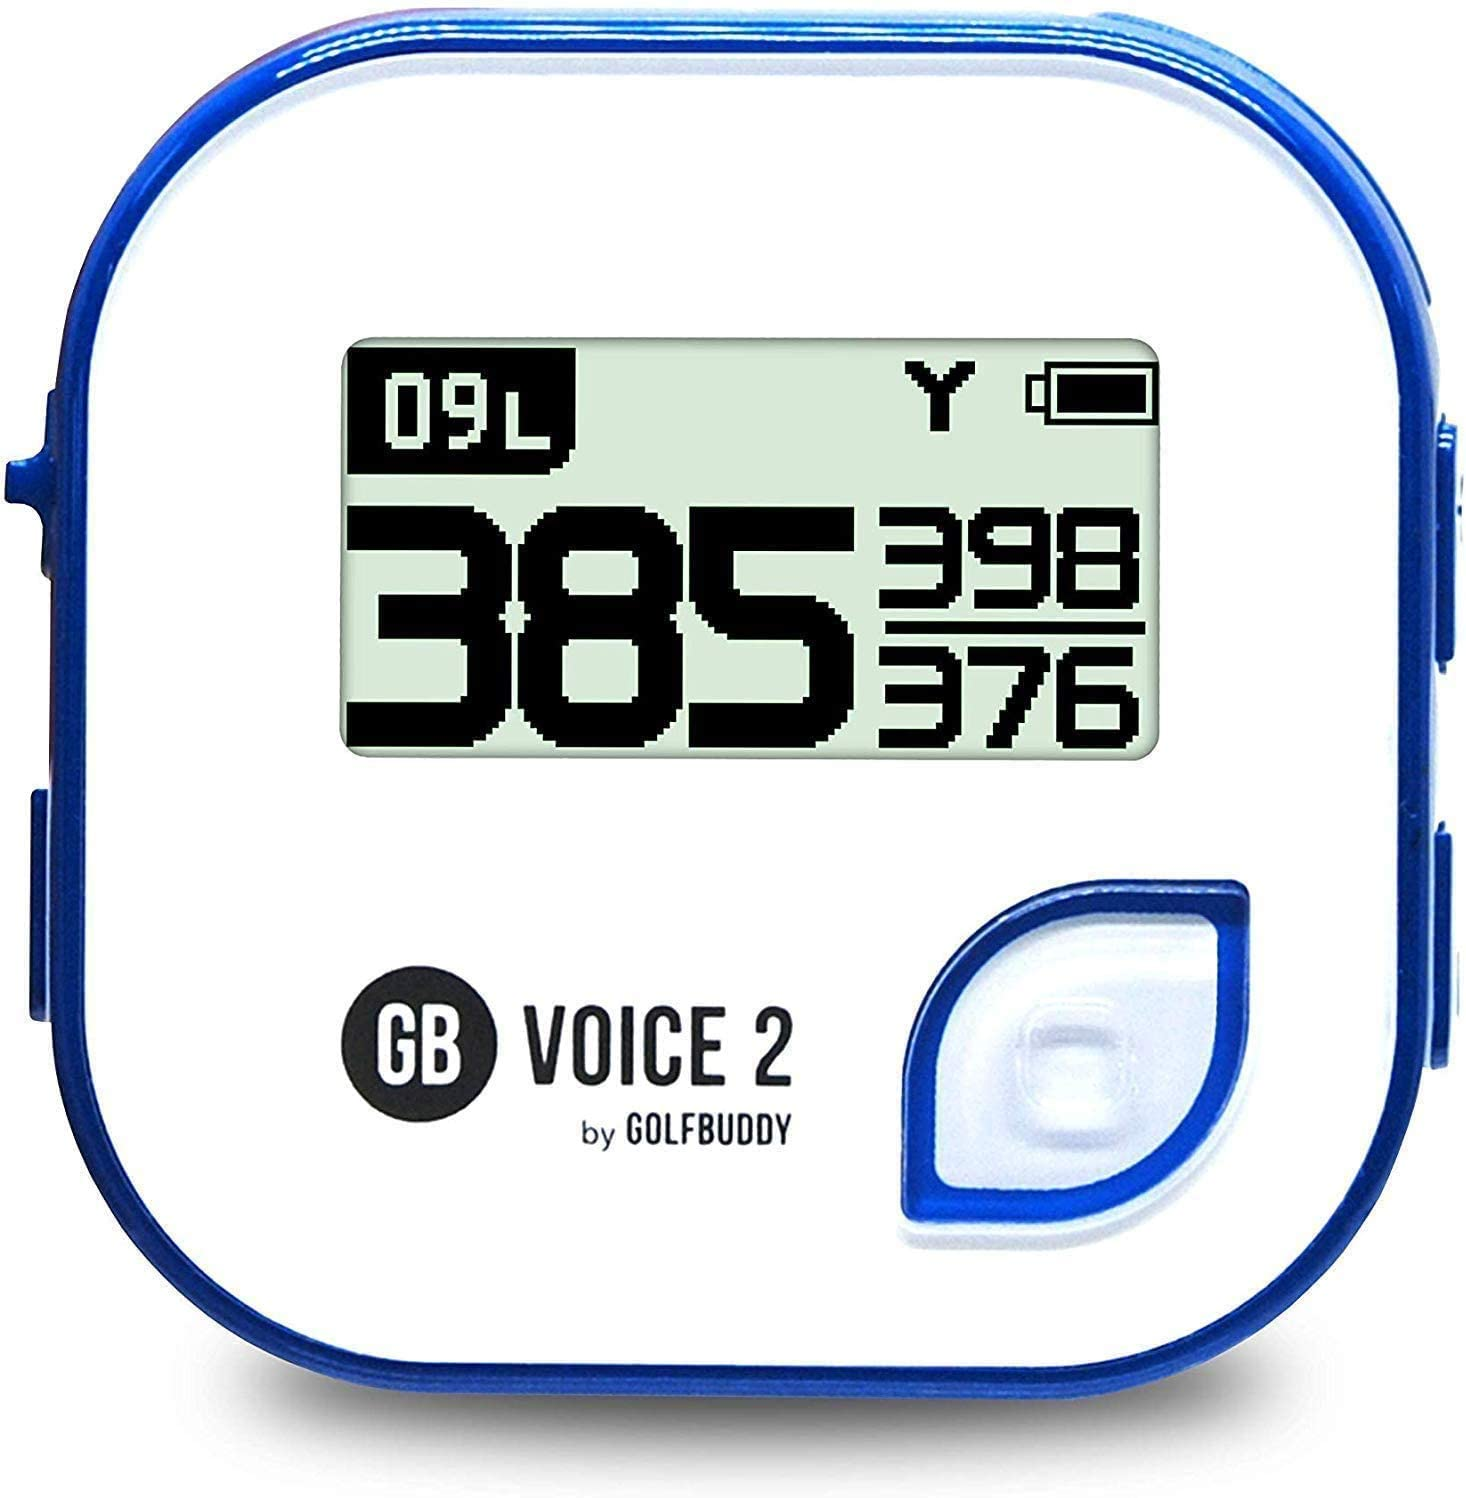 GolfBuddy Clip on Voice 2 Golf Navigation GPS for Hat/GPS and Laser Rangefinder, 14 Hours Battery Life, Water Resistant with Lifetime Free Courses and Software Updates,White/Navy